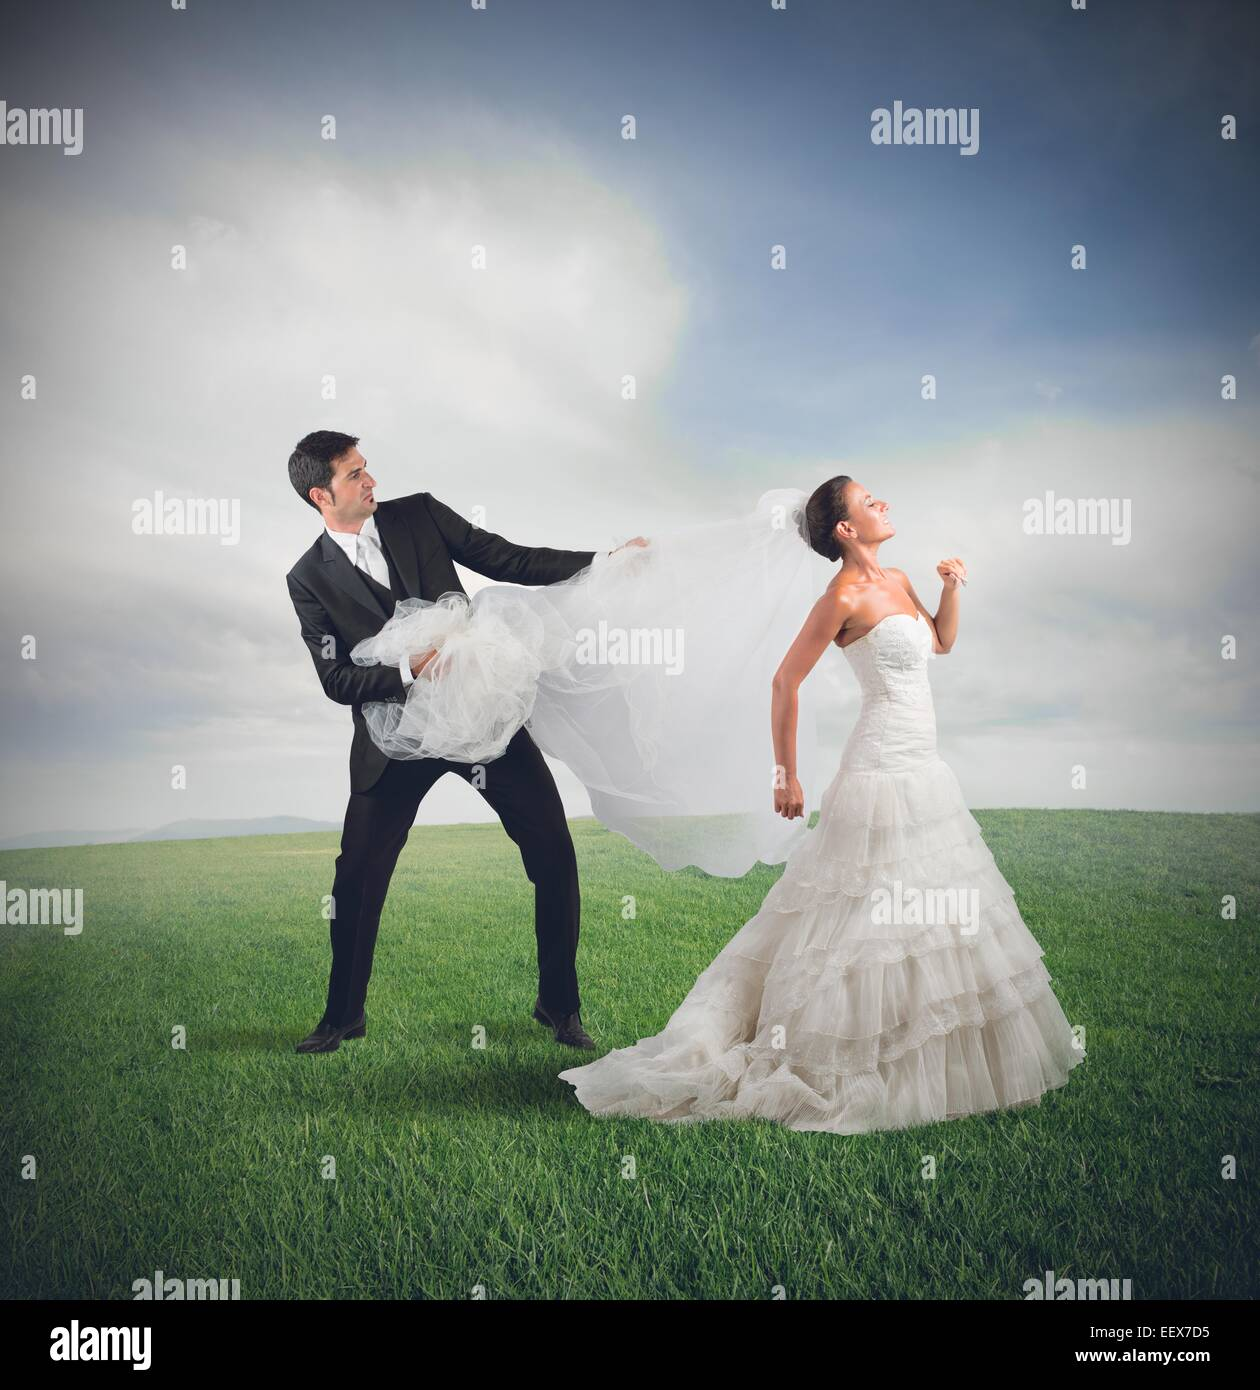 Bride runs away - Stock Image